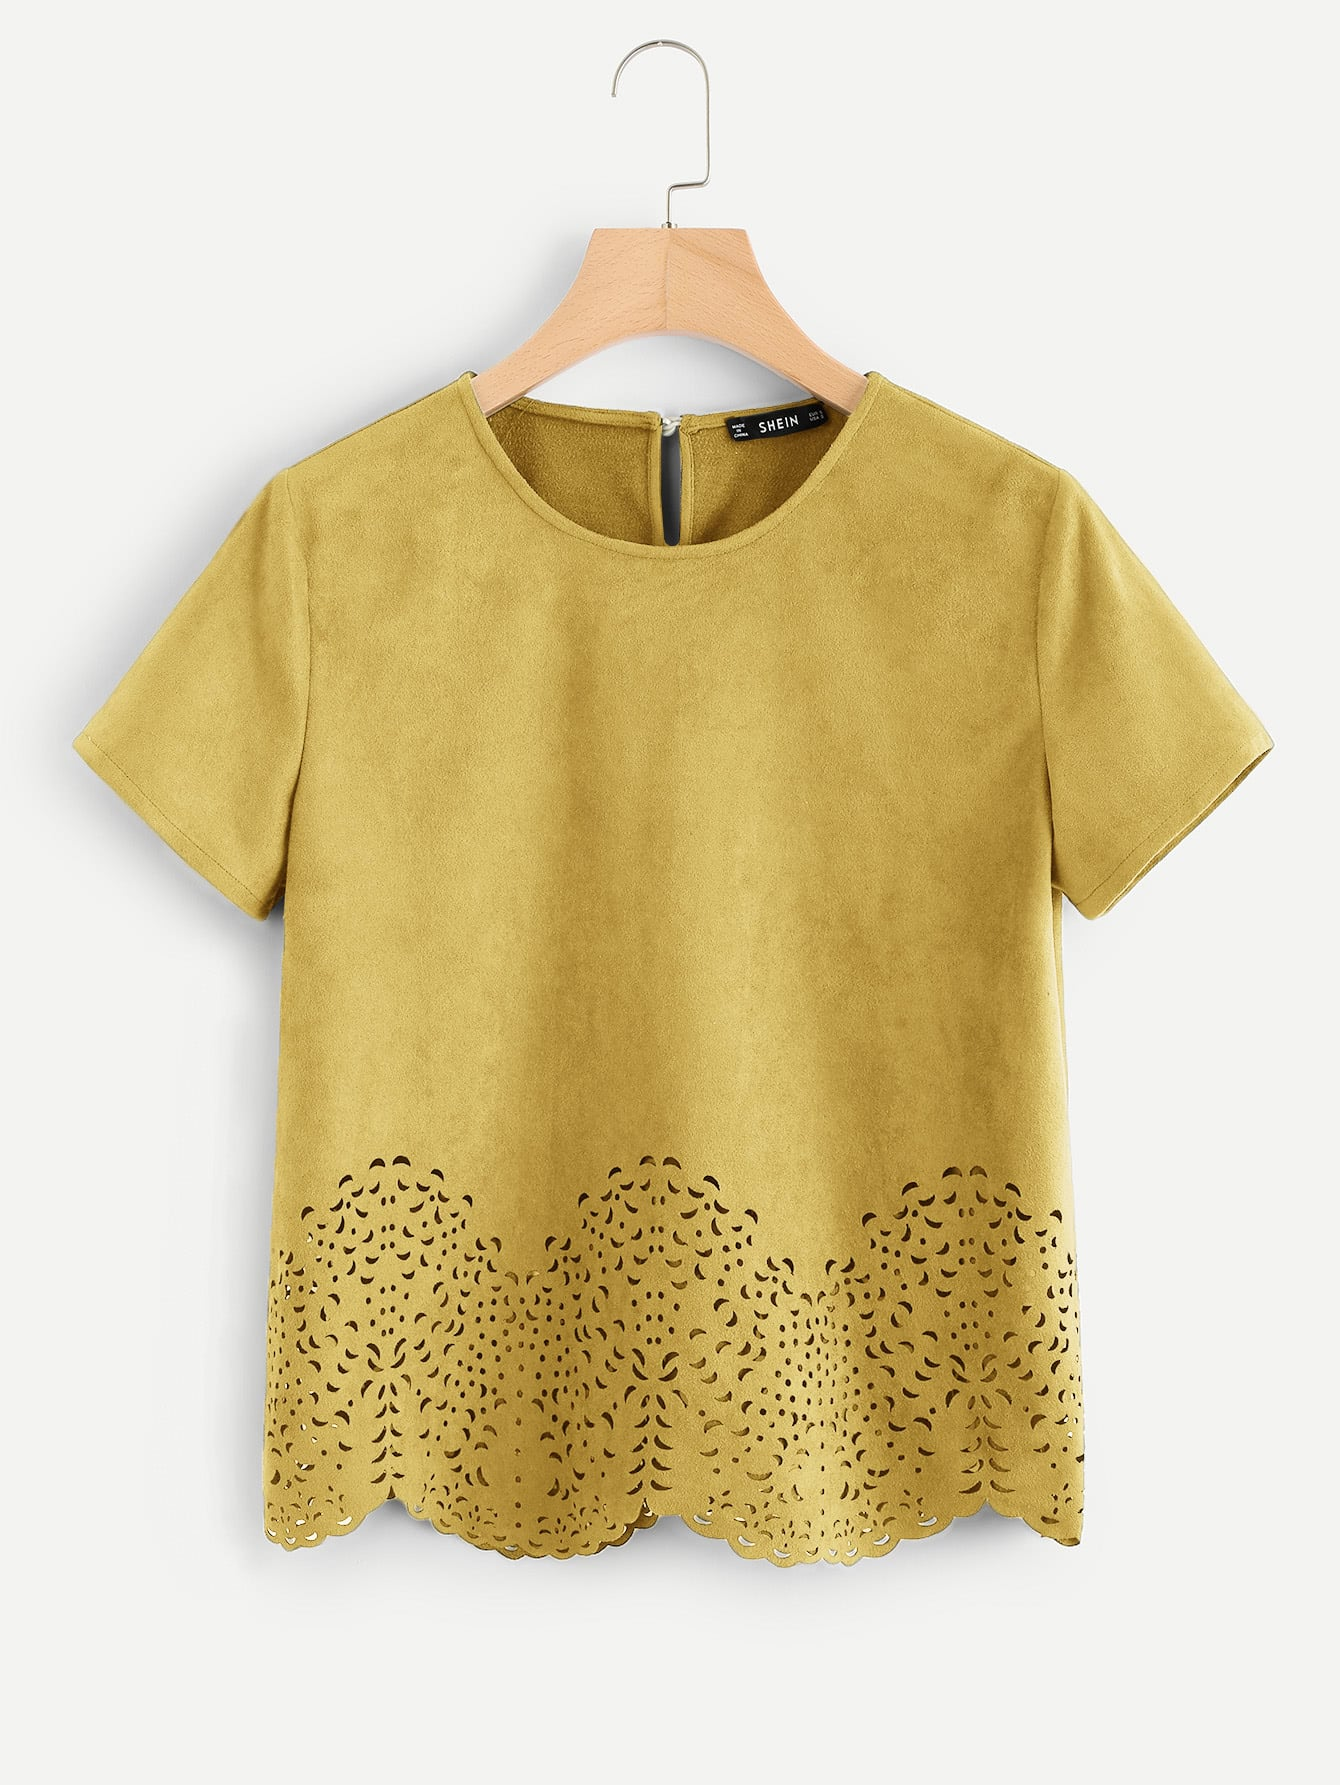 Scallop Laser Cut Out Top scallop laser cut out textured tank top